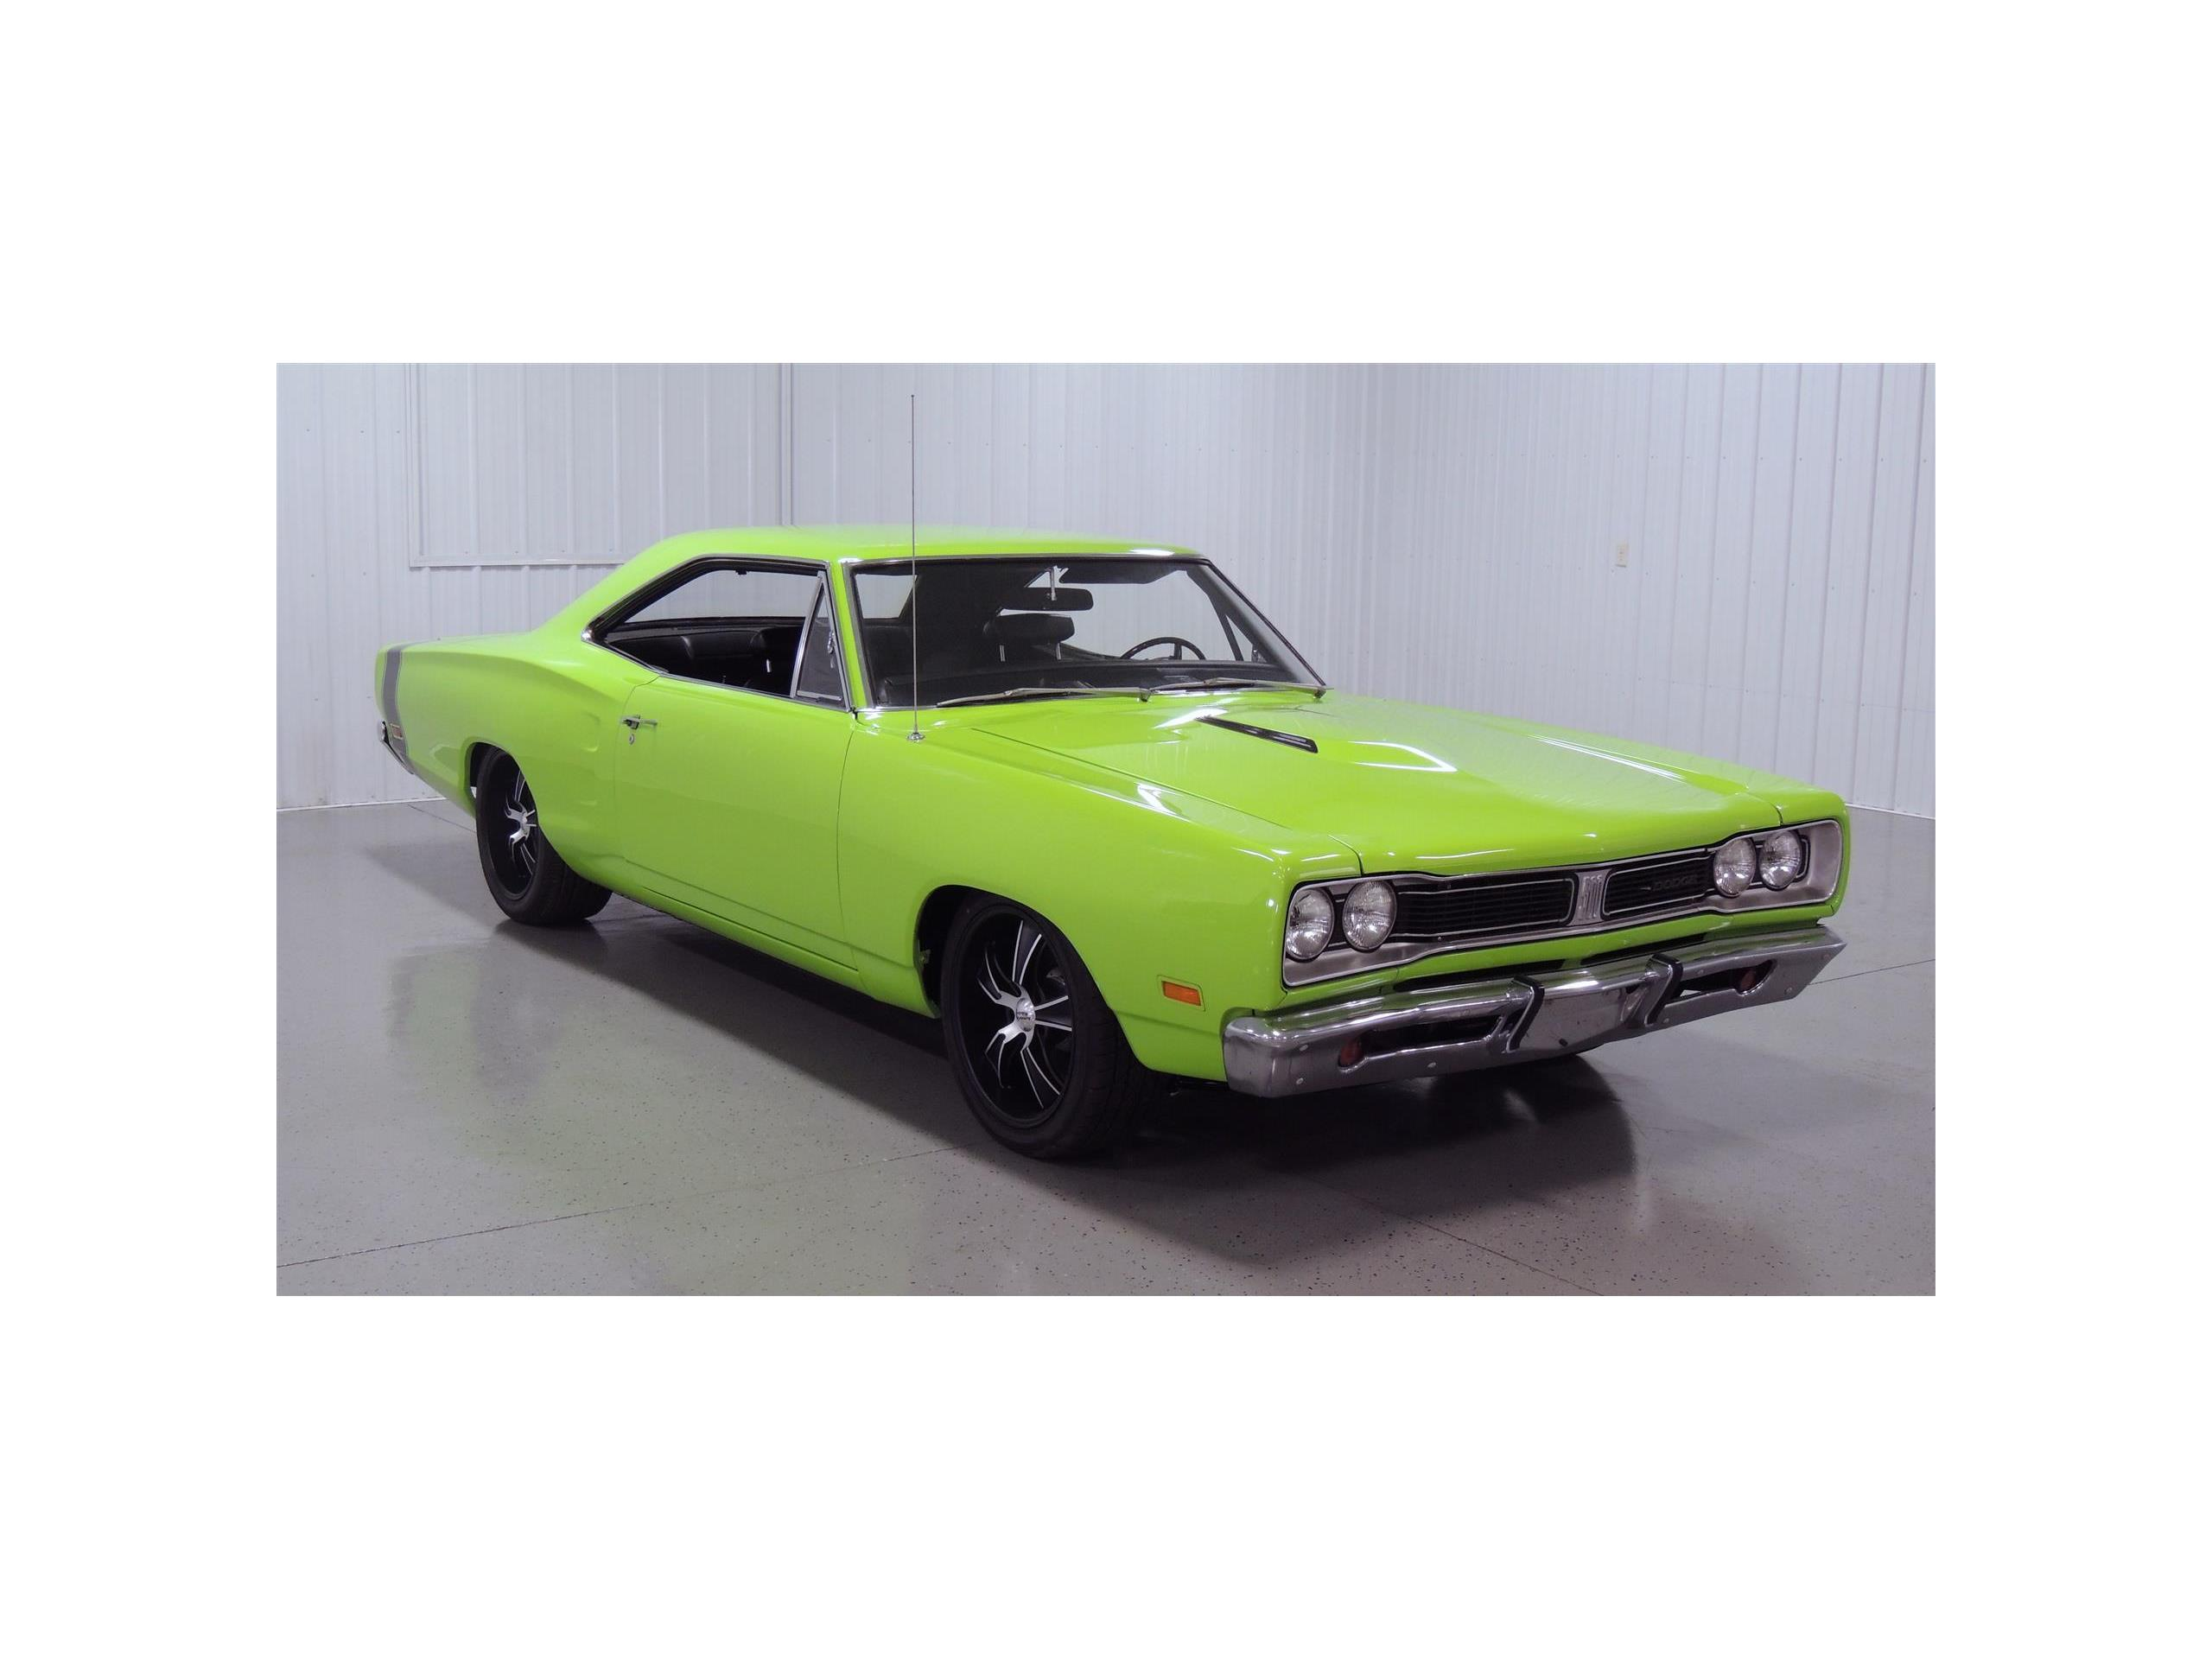 1969 Coronet 500 Wiring Harness Free Download 1968 Dodge For Sale Classiccars Com Cc 1130710 1966 Convertible At